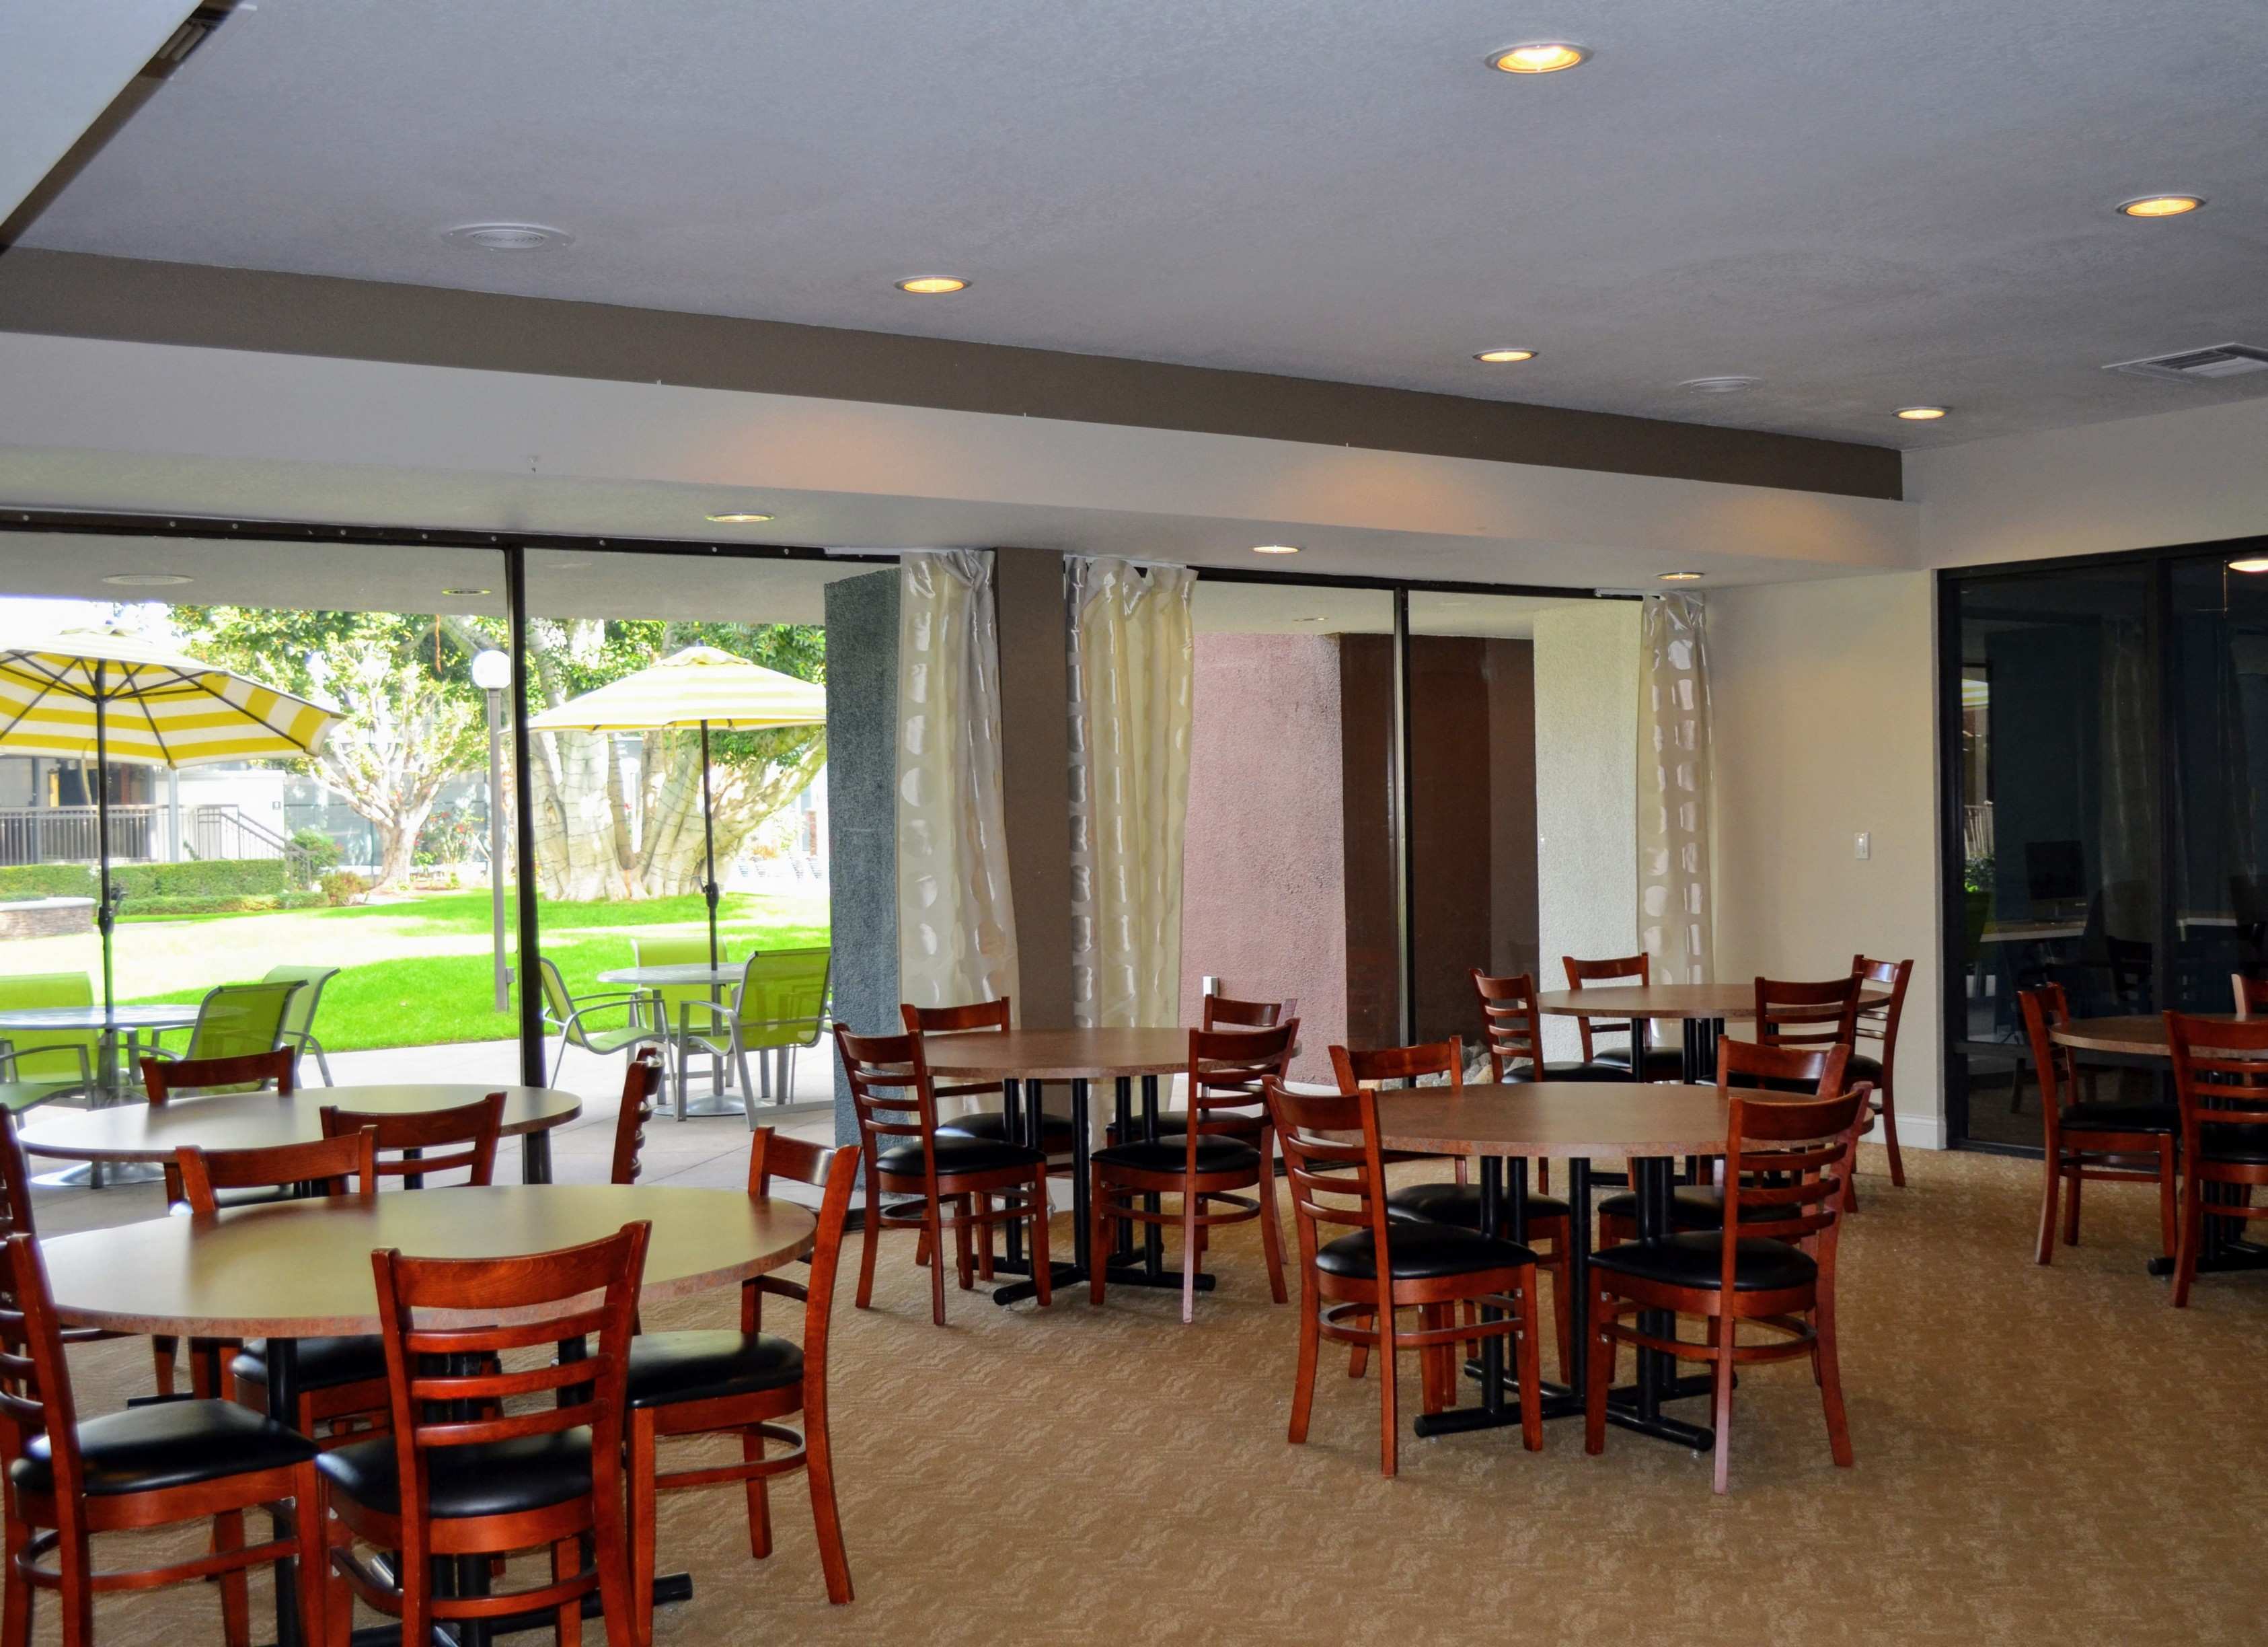 Clubhouse With Banquet At Madison Park Apartment Homes, Anaheim, California